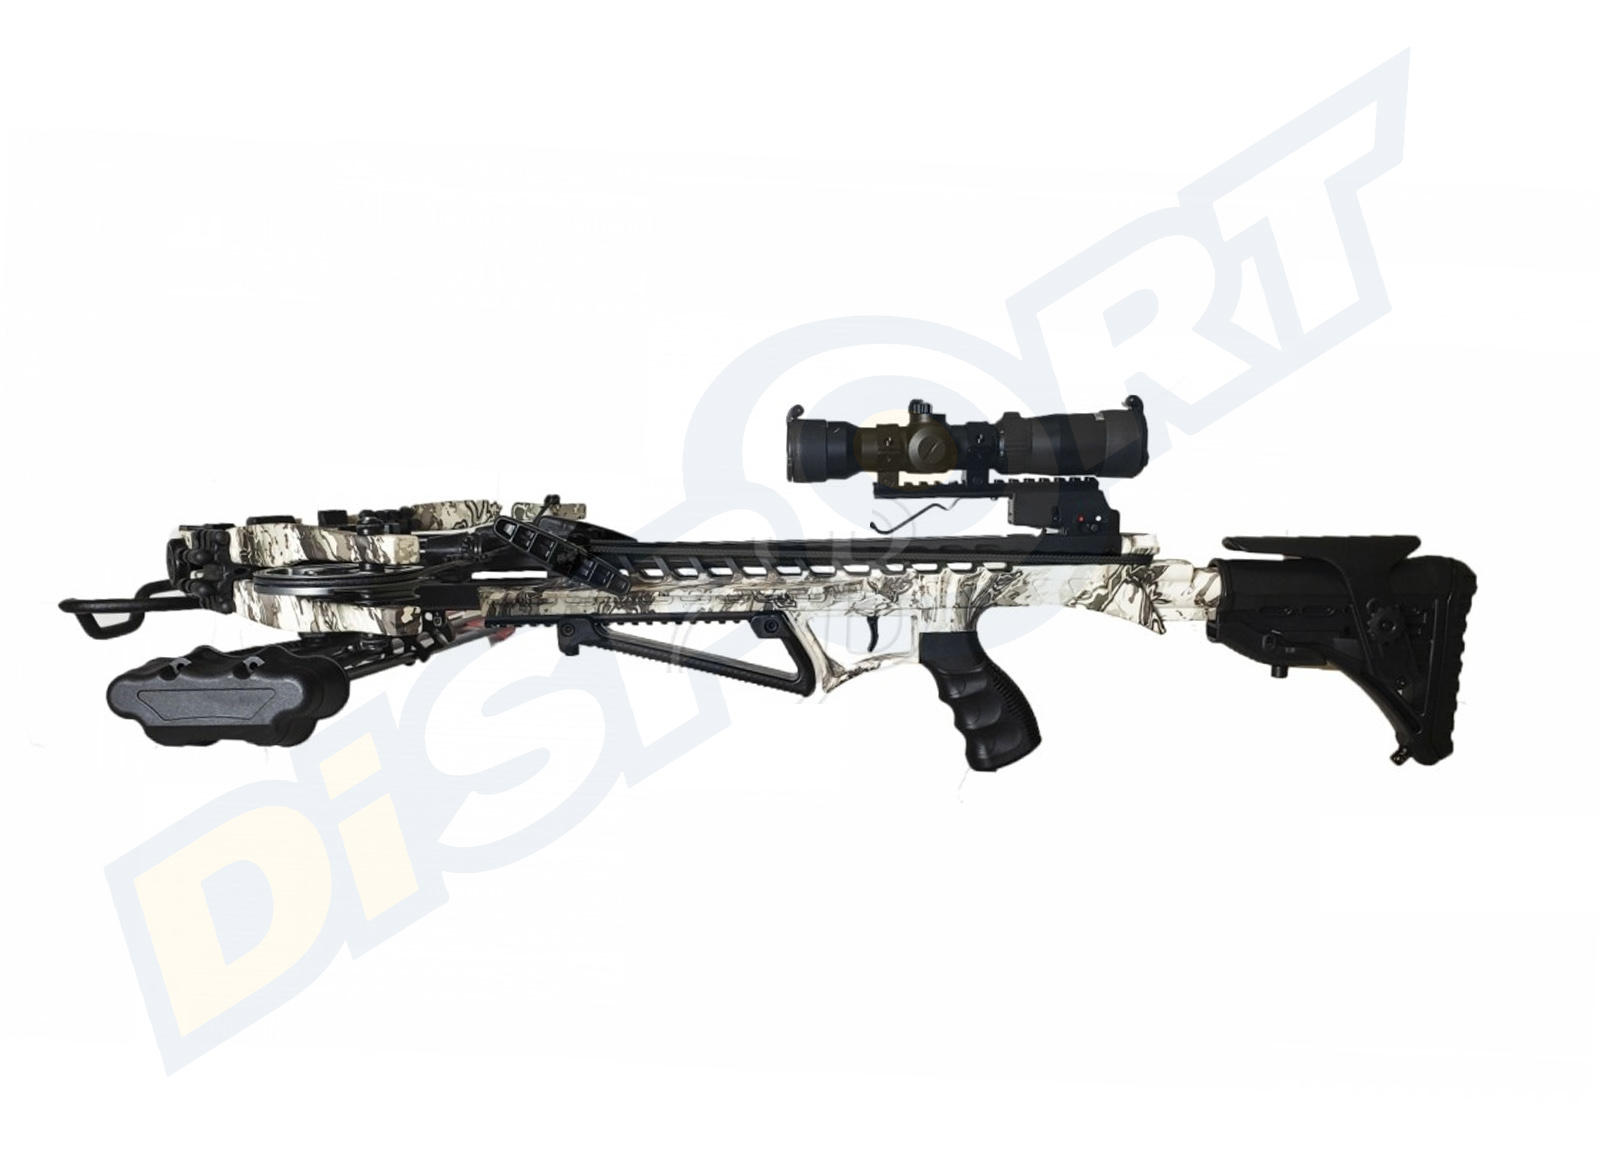 PSE BALESTRA FANG HD CAMO 205# HDV 425 SCOPE